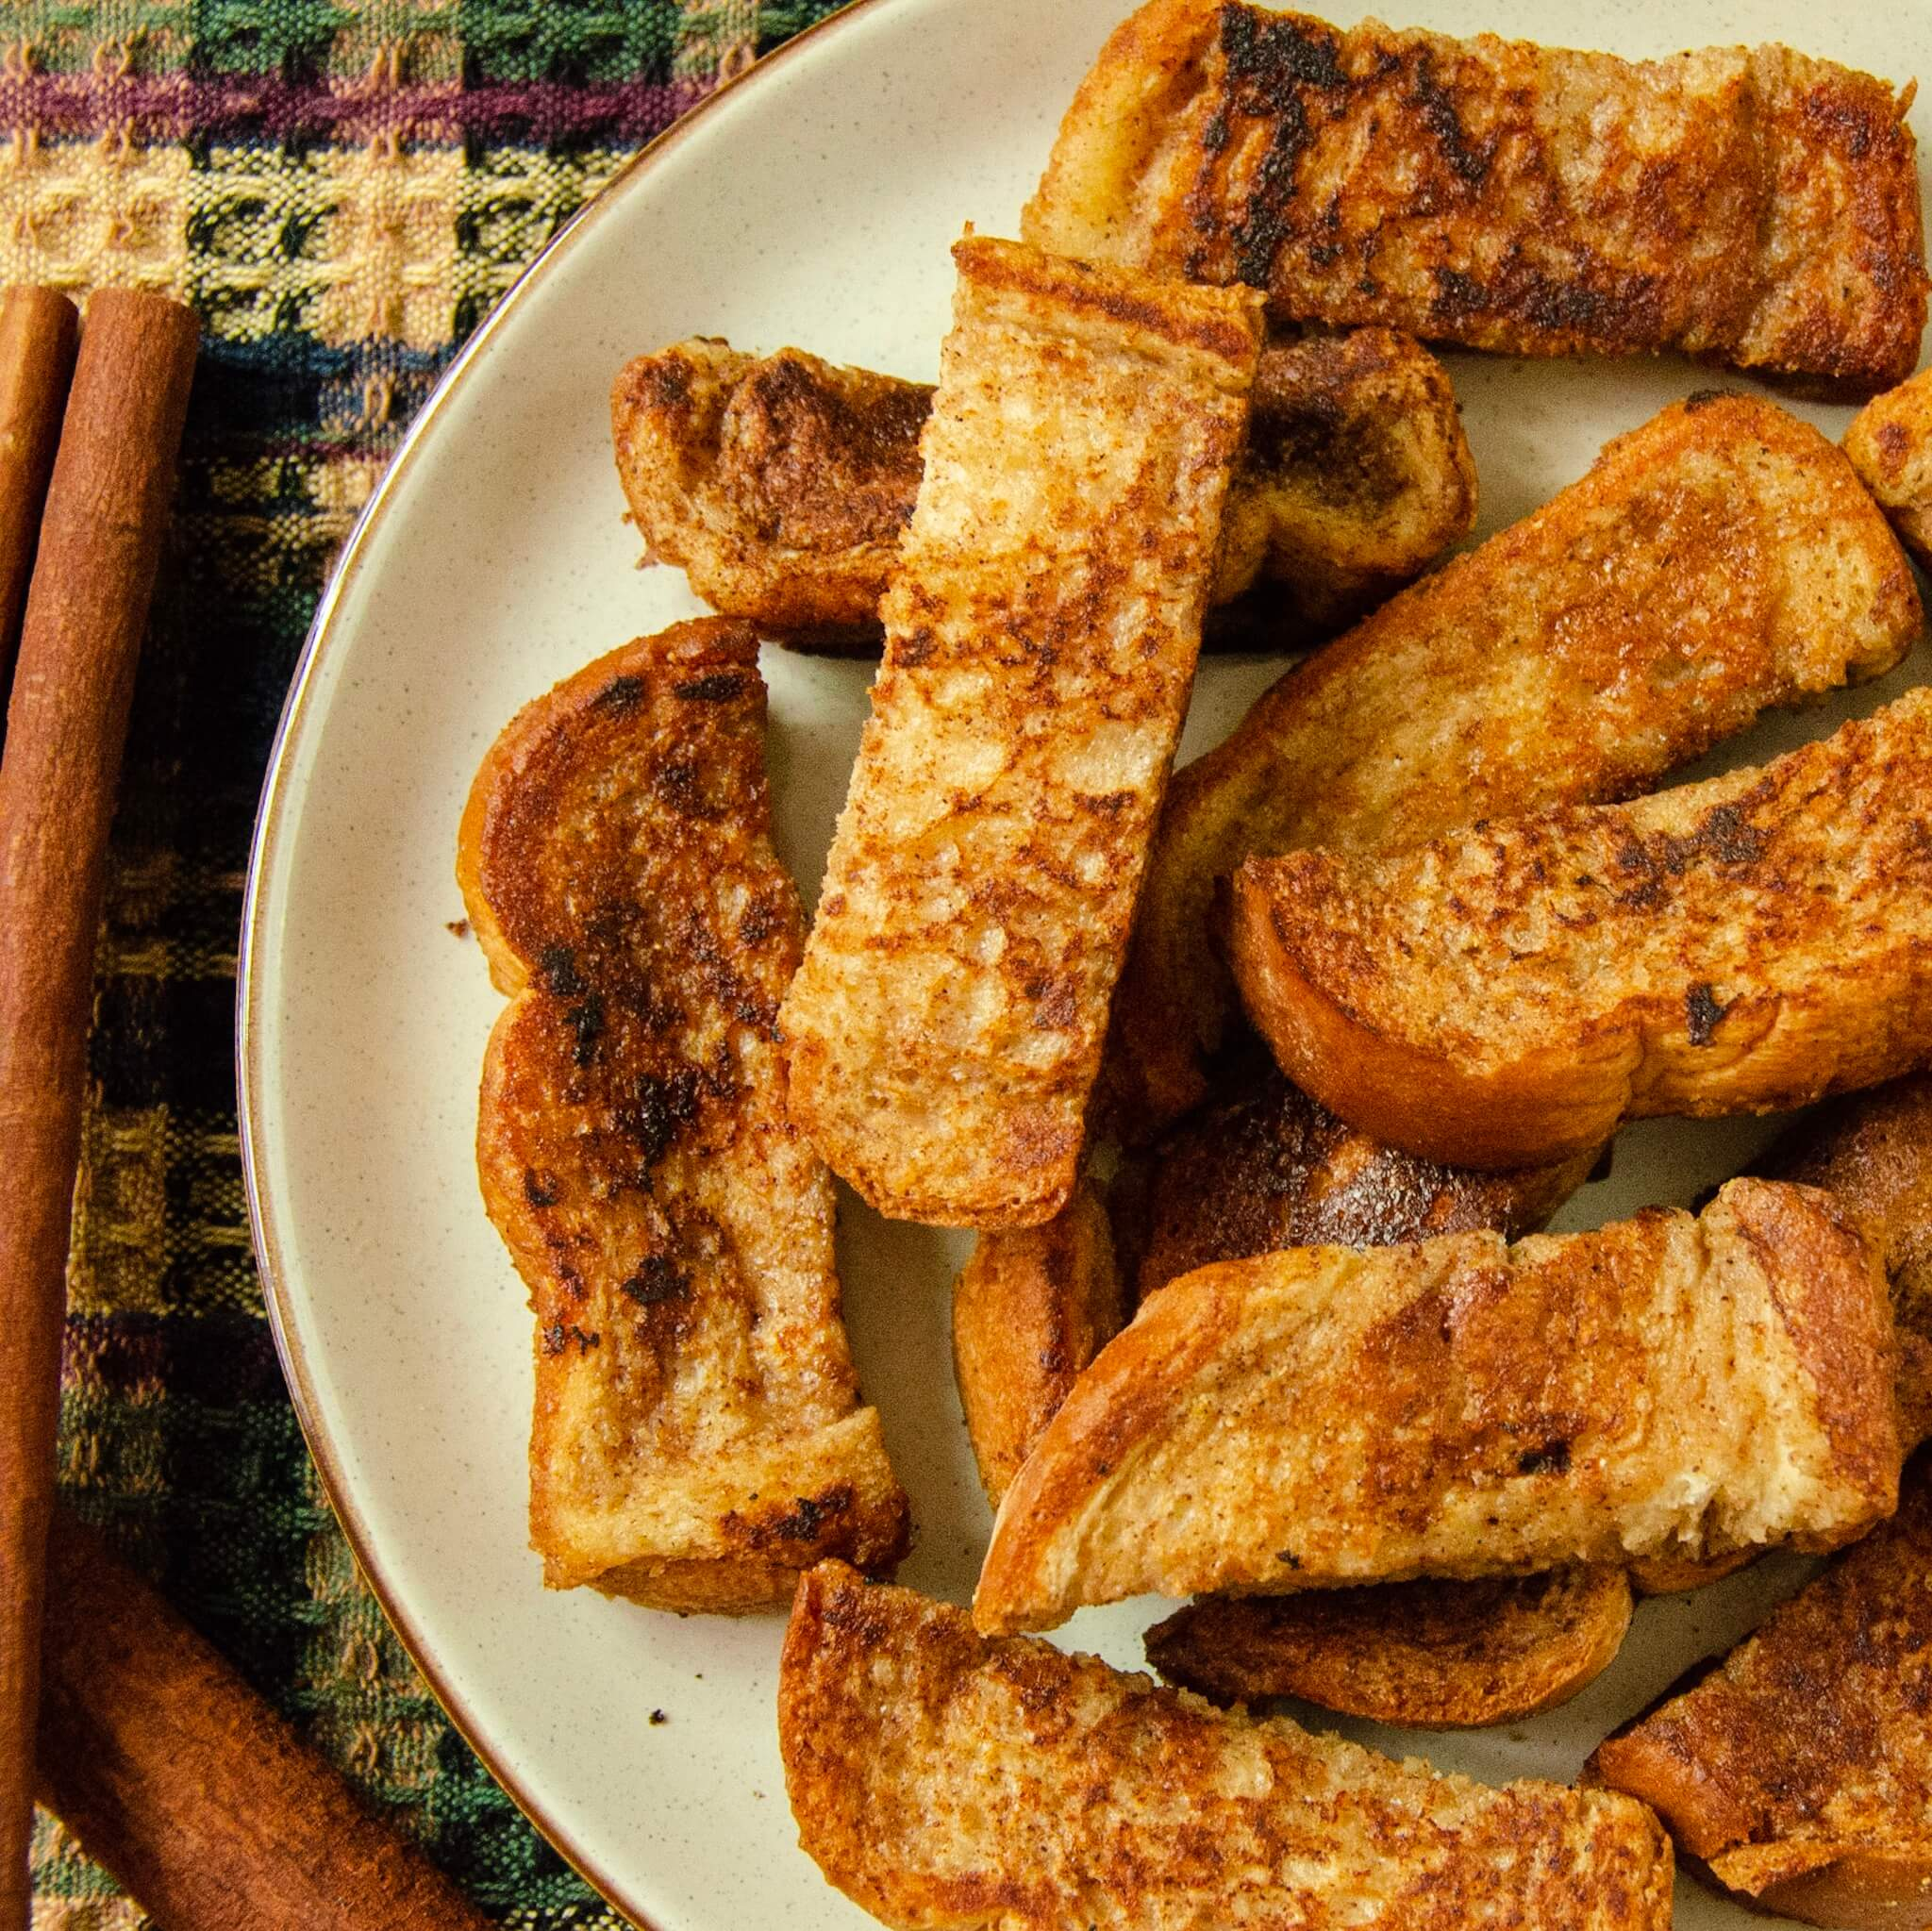 vegan french toast sticks with half cut off